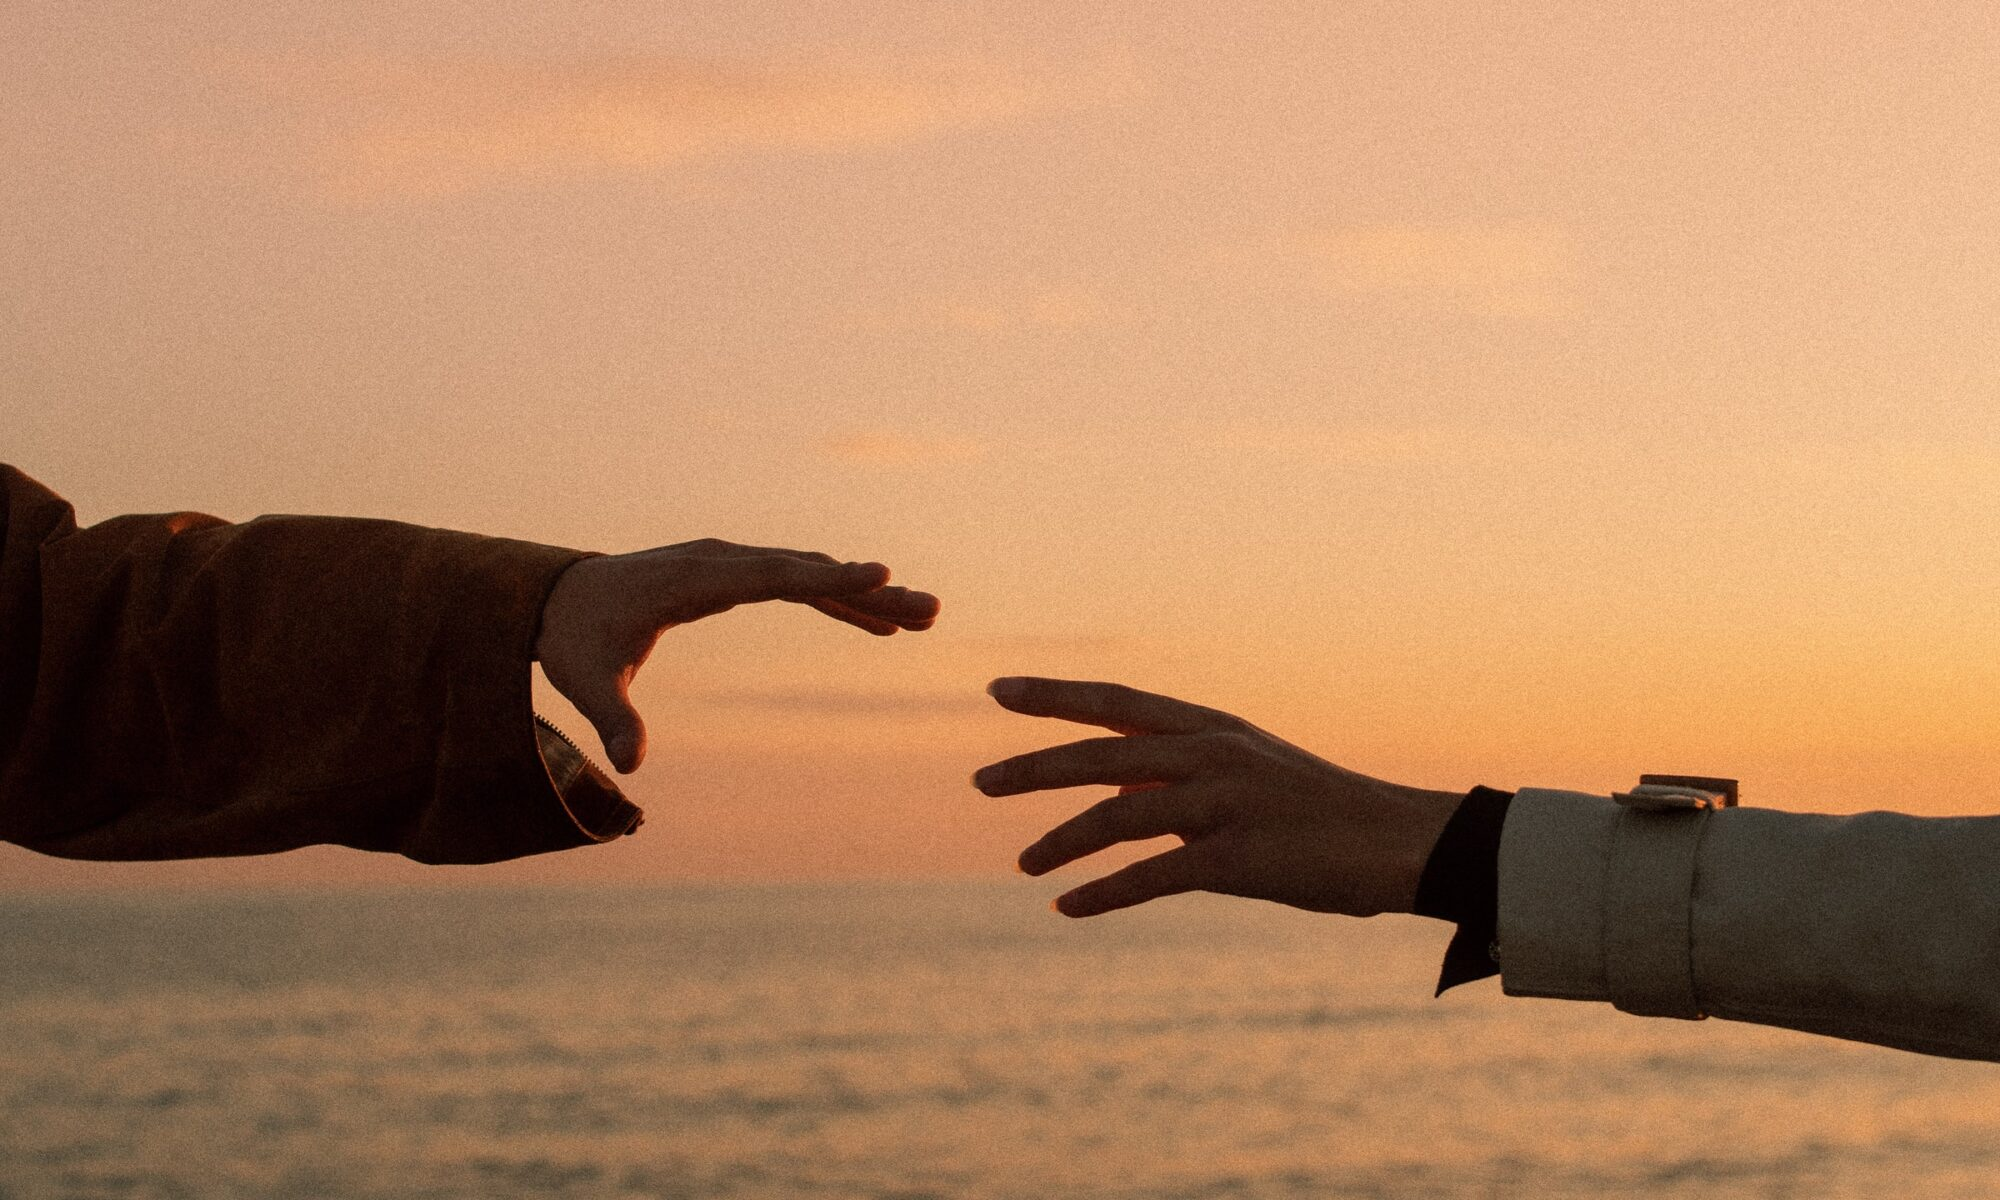 Two hands reaching out to touch each other.